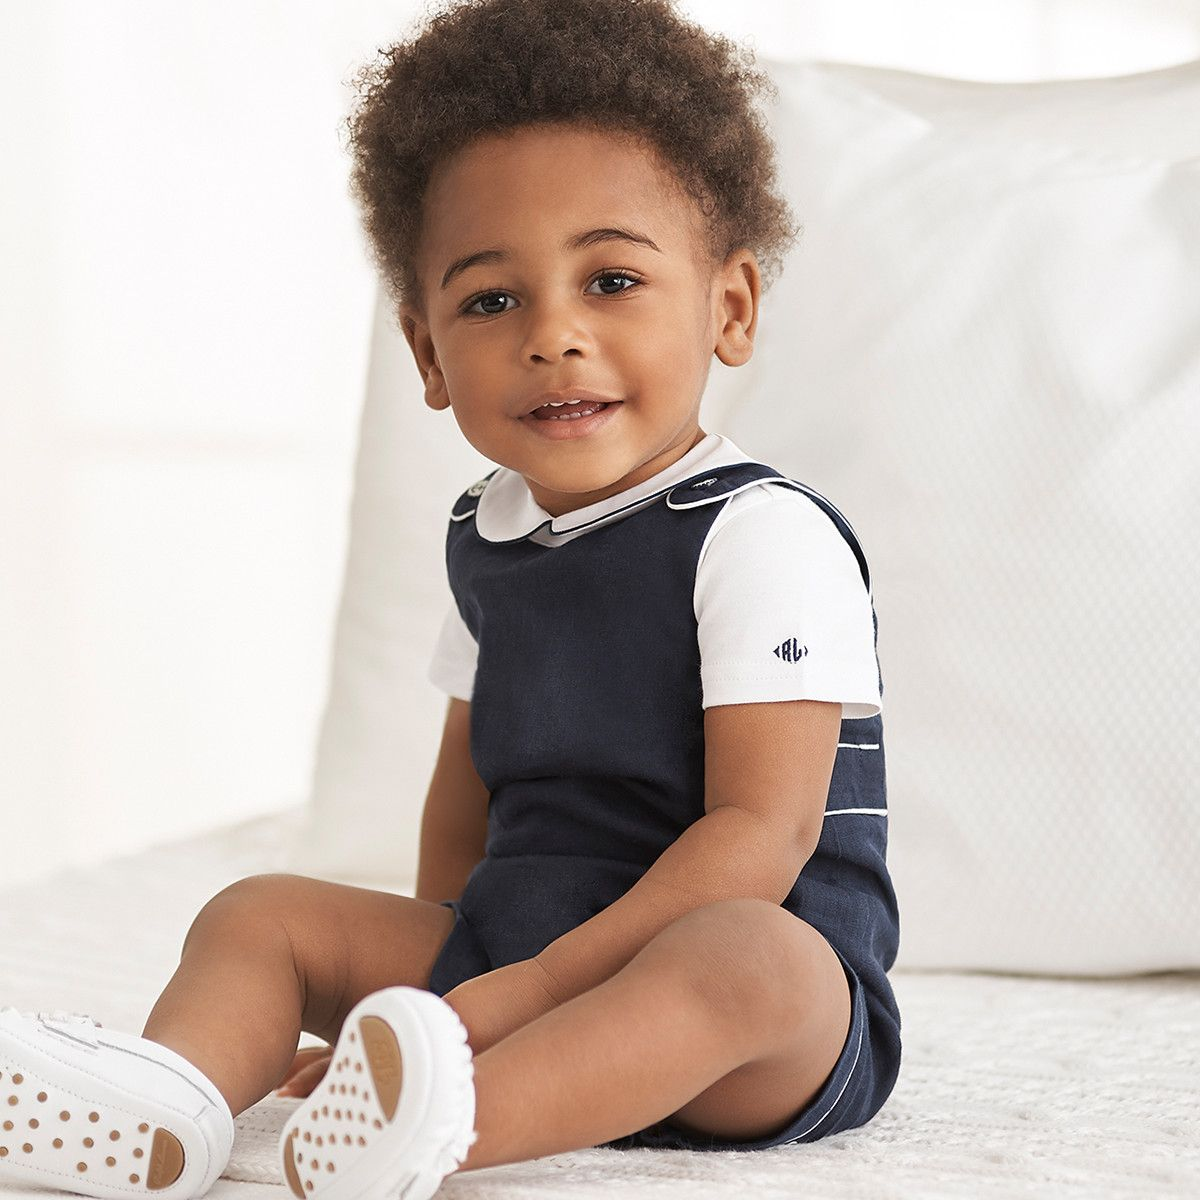 fb7fe796f5c1 Ralph Lauren Baby Clothes   Polo - Macy s